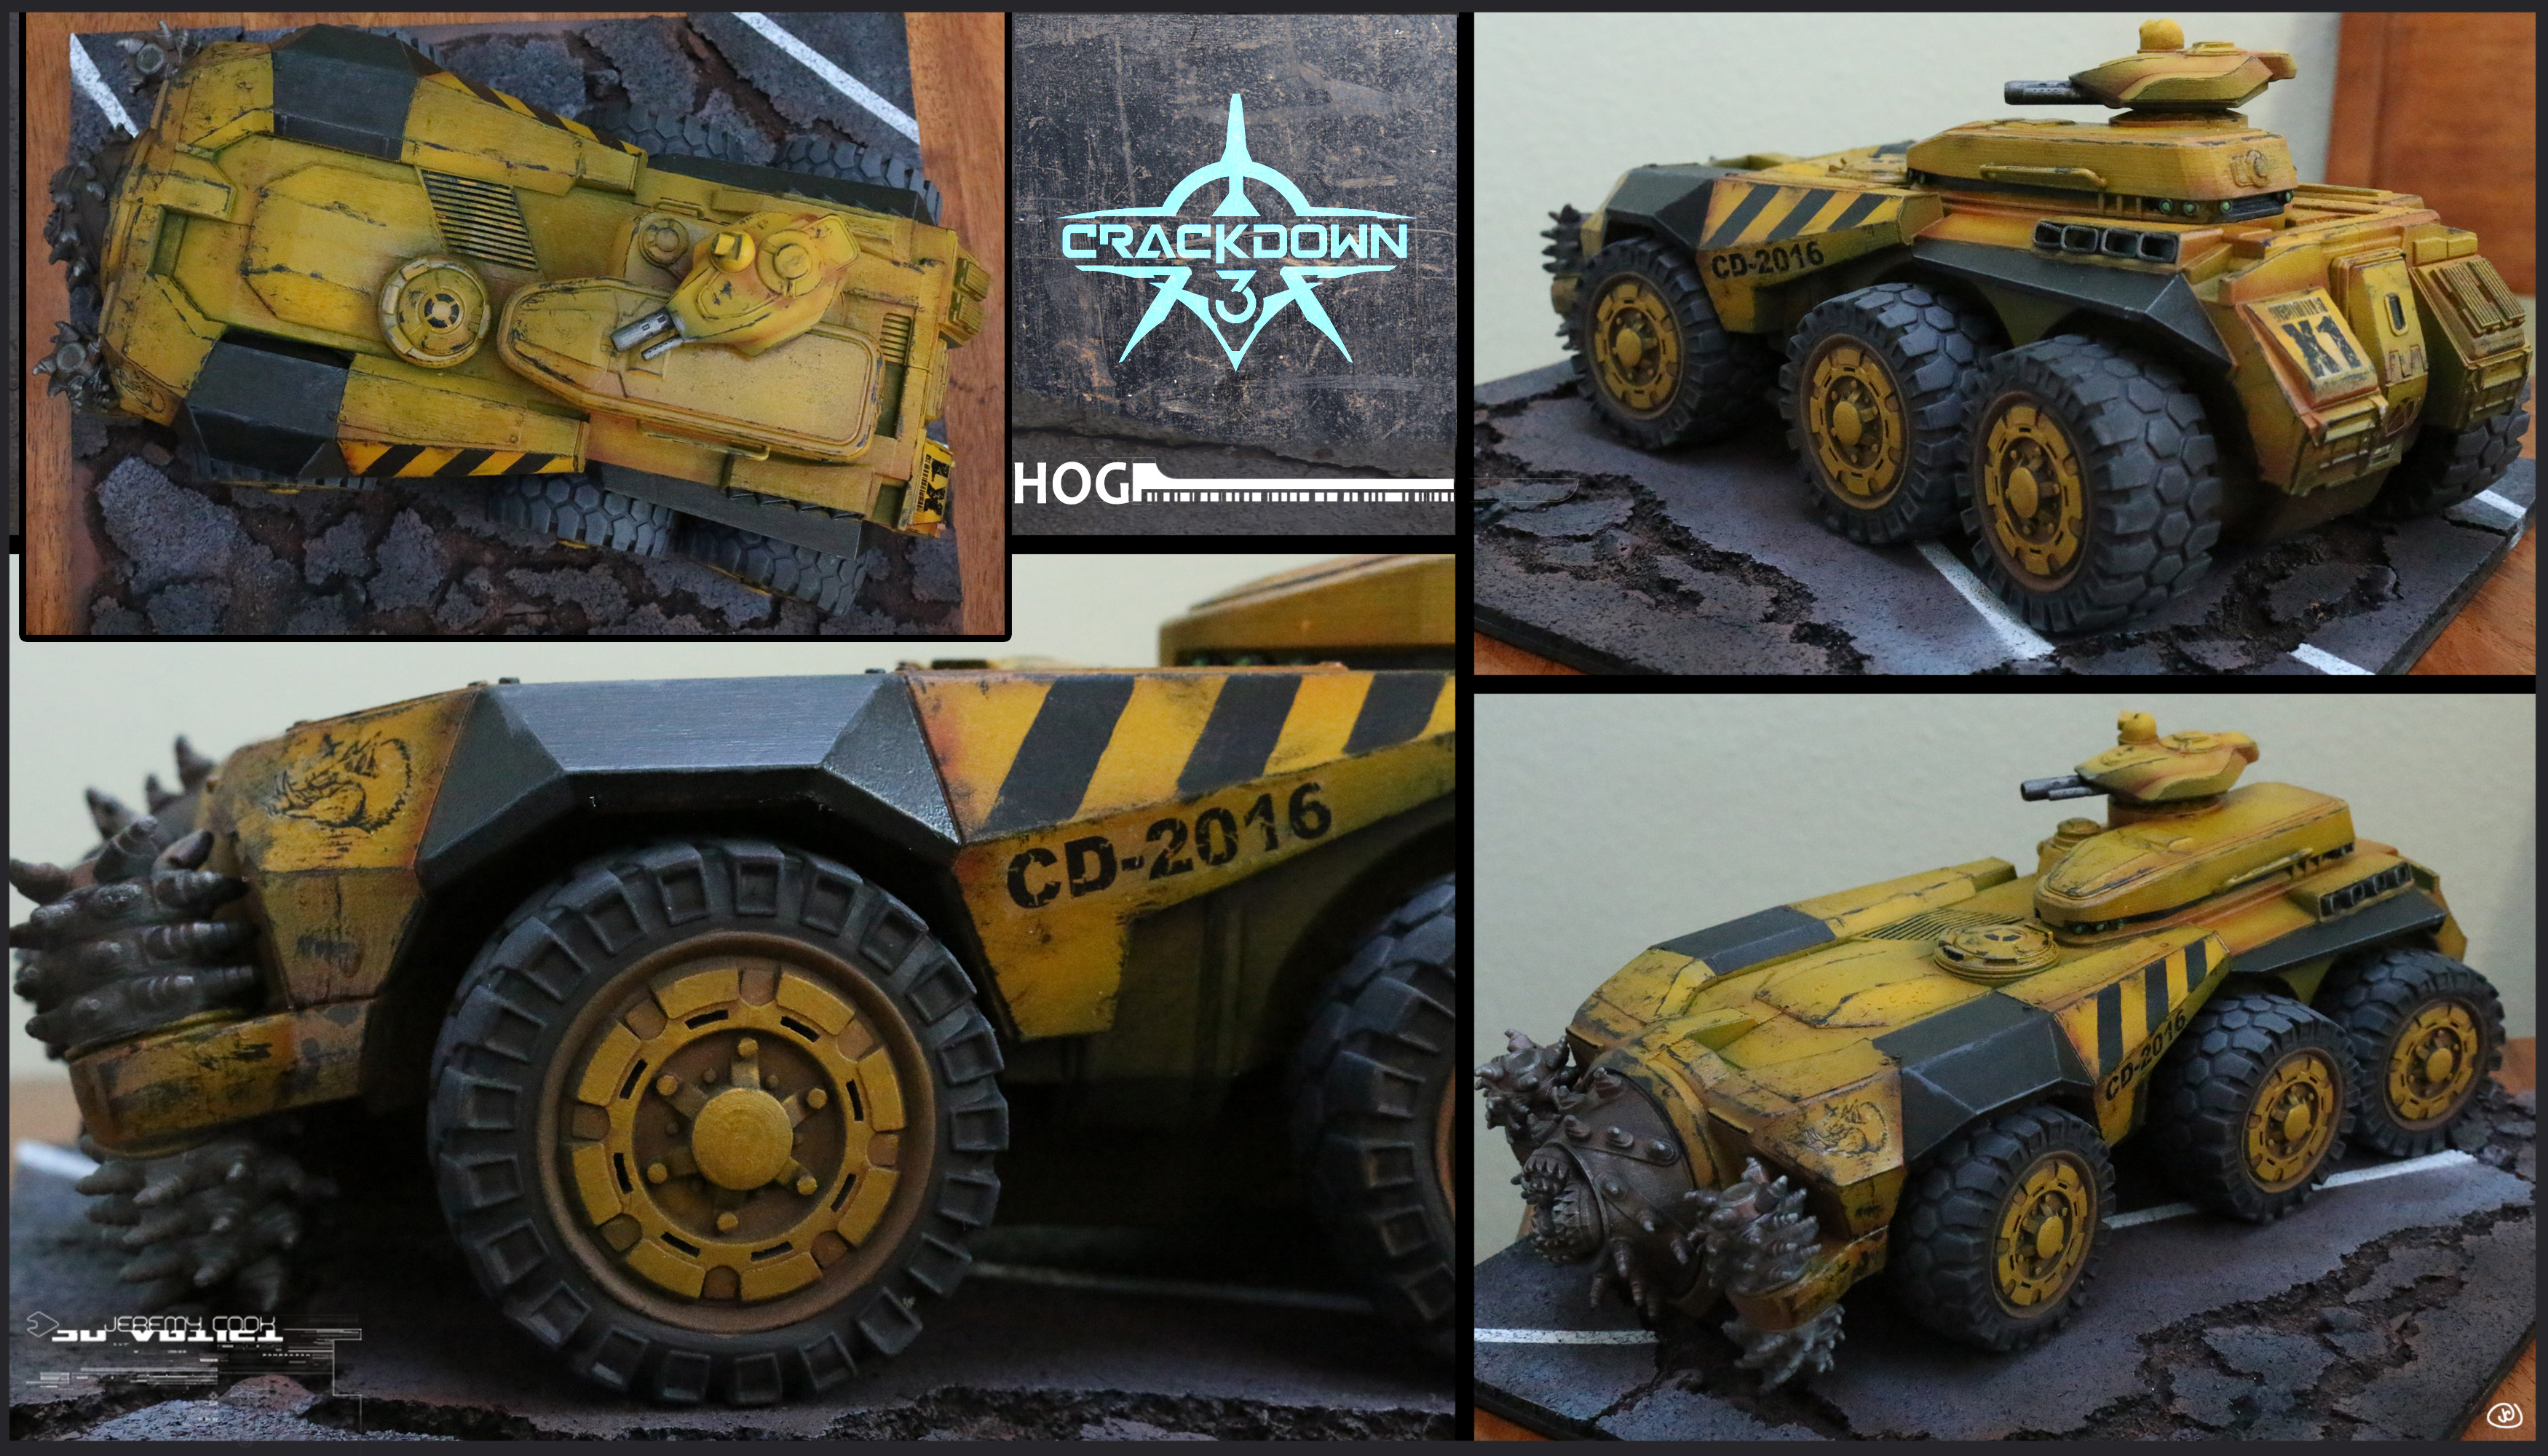 I created a 3D print, assembled and painted model (alternate color scheme and themed base) roughly 12 inches long